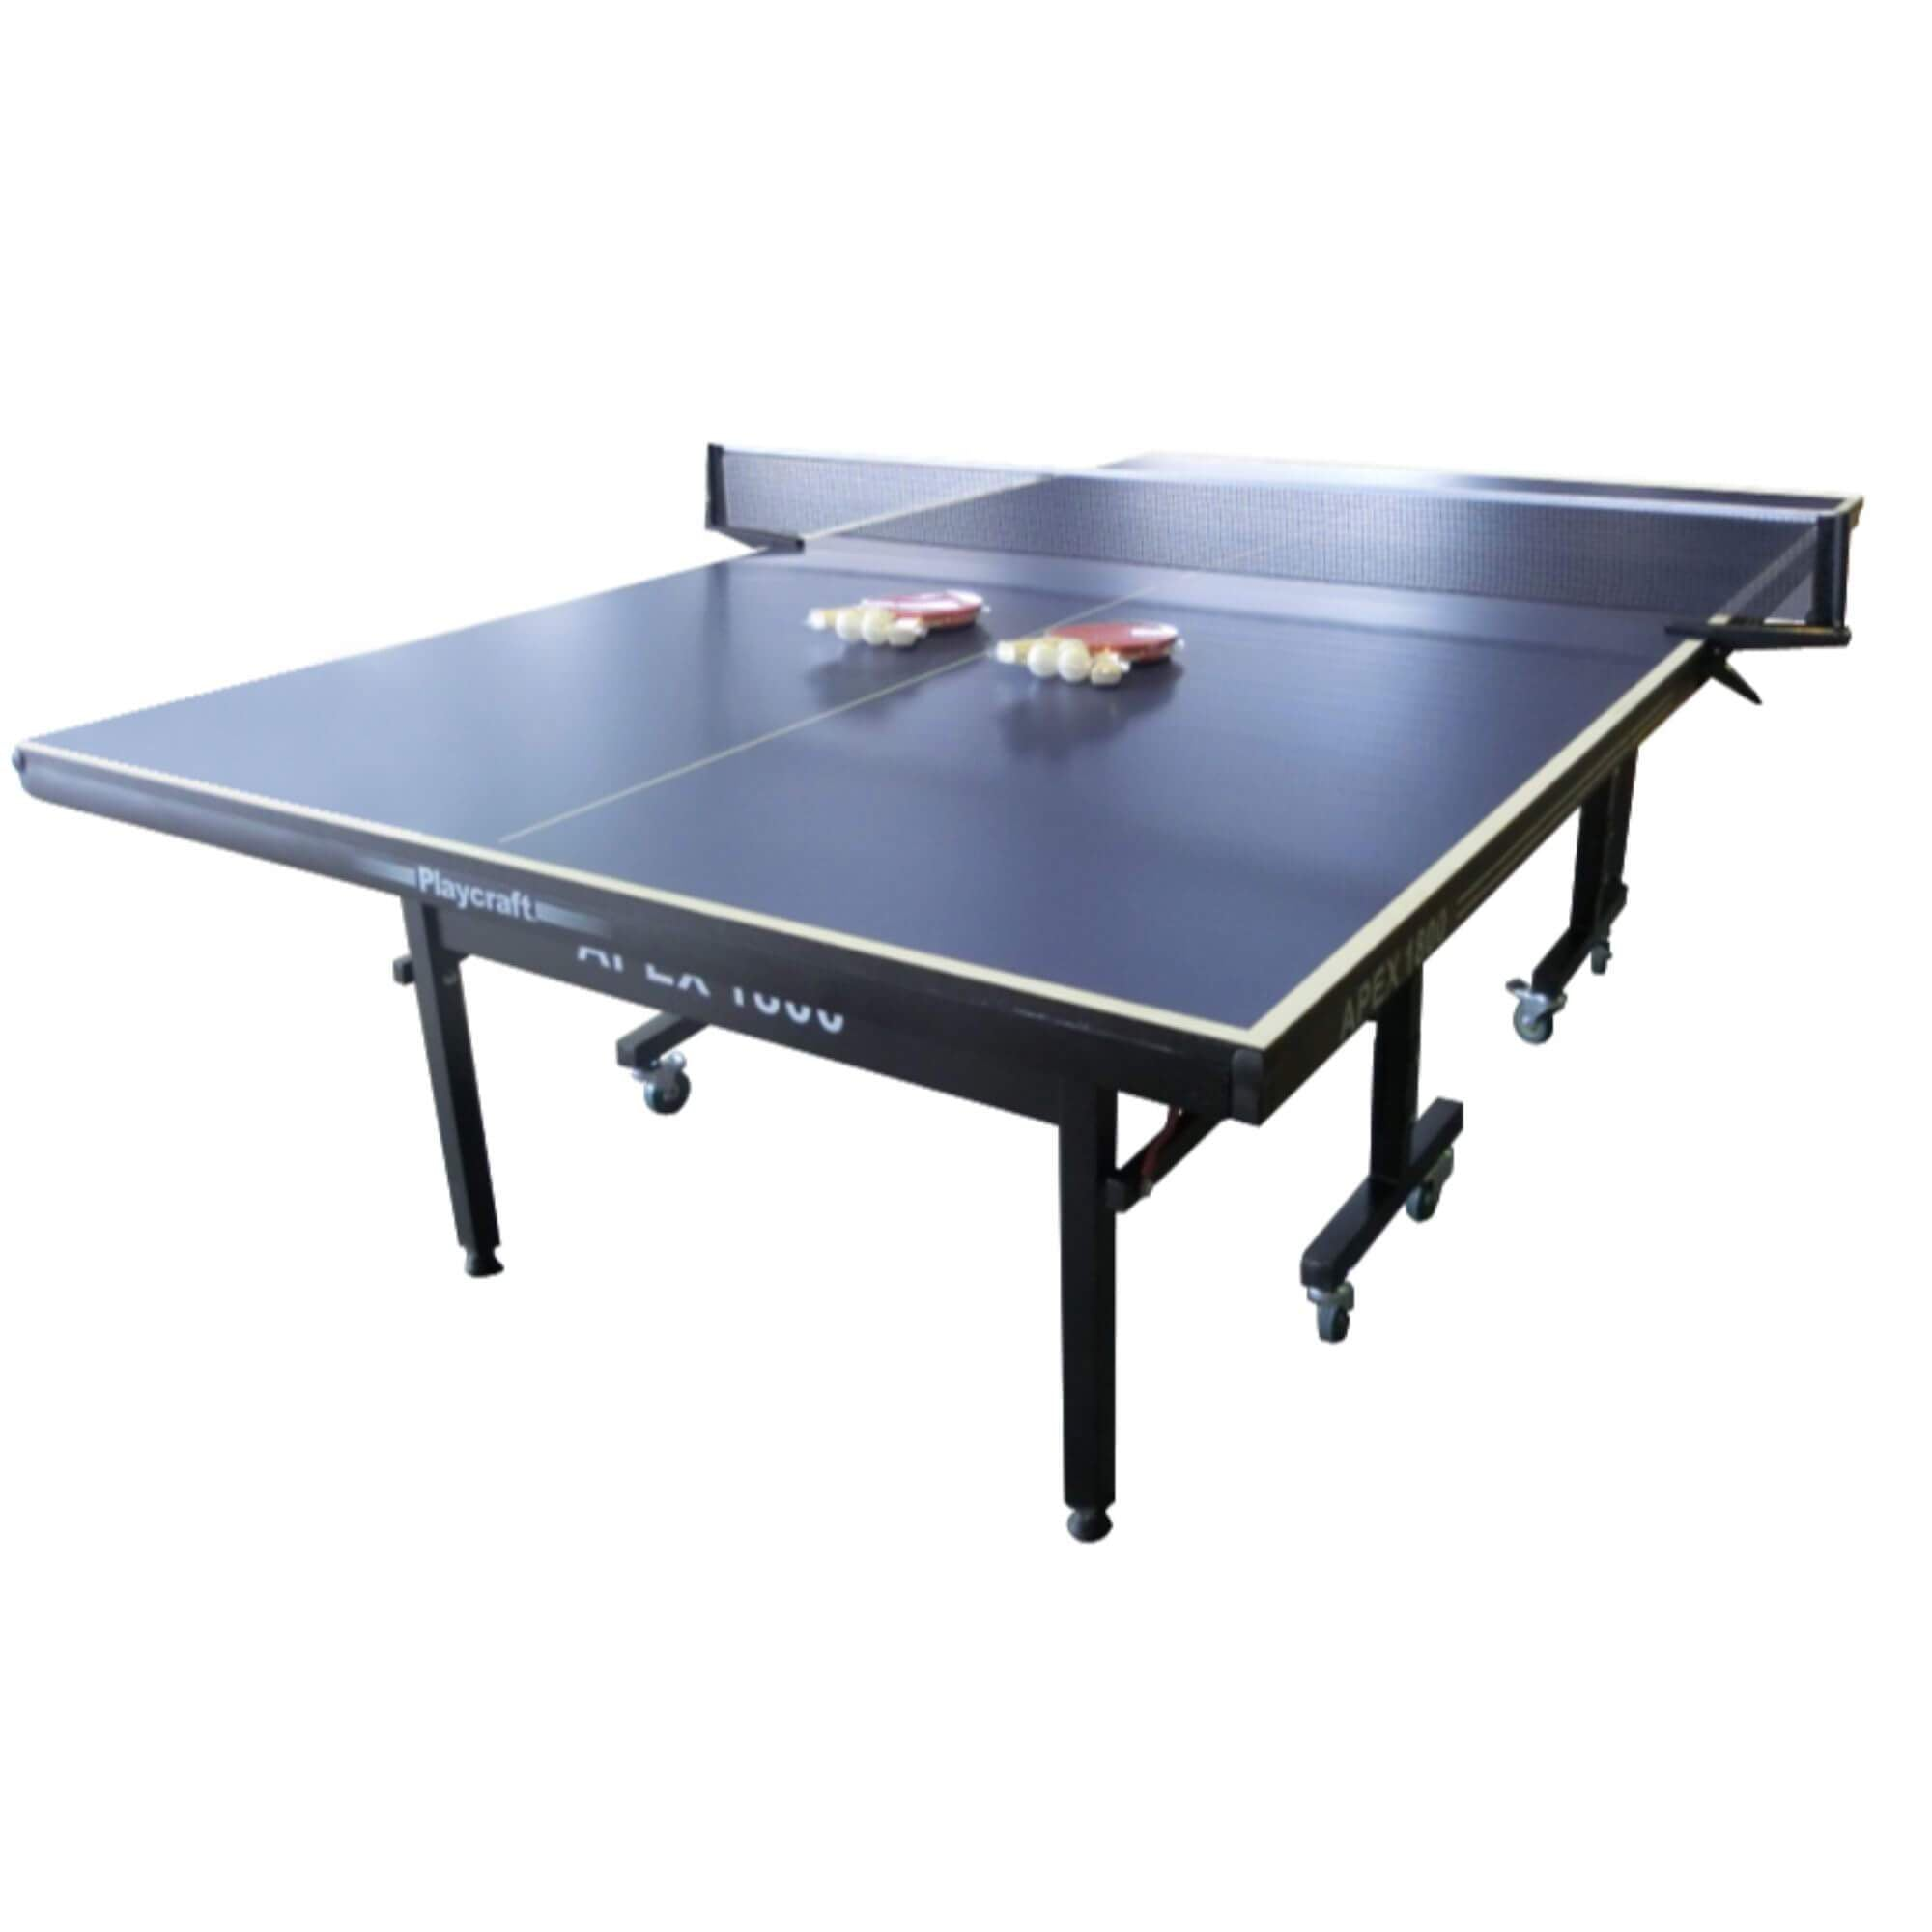 Playcraft Apex 1800 Indoor 9' Table Tennis Table - Gaming Blaze